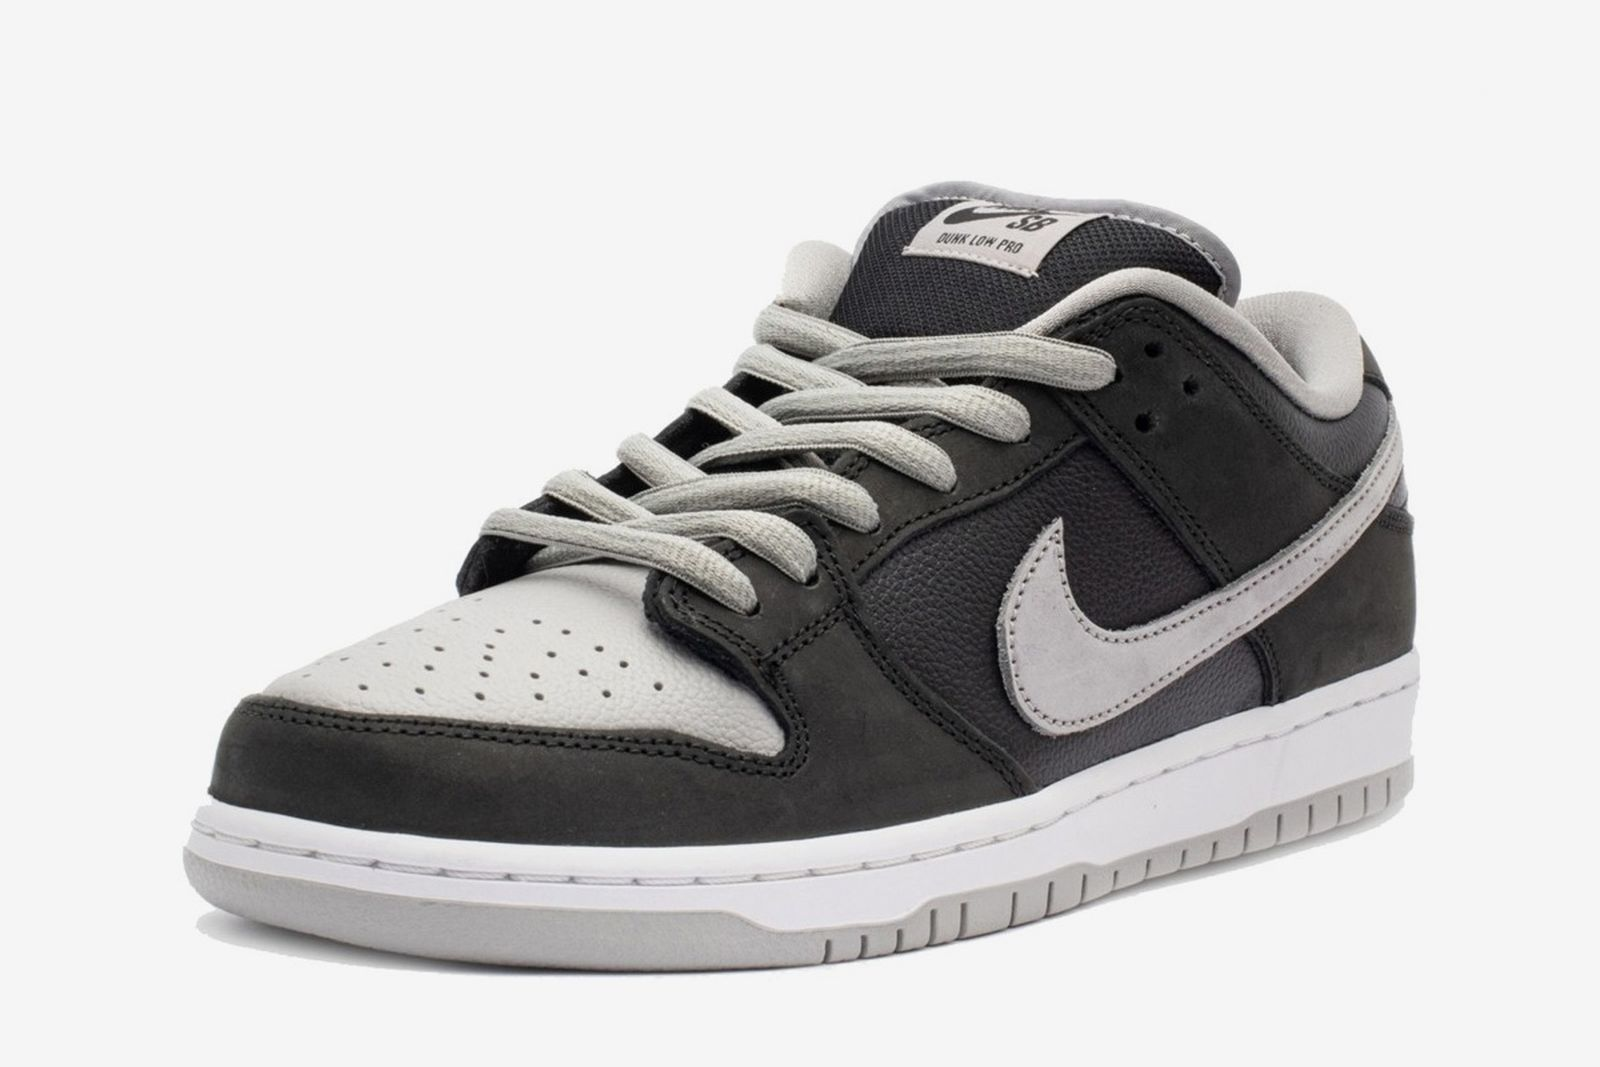 nike-sb-dunk-low-shadow-release-date-price-02